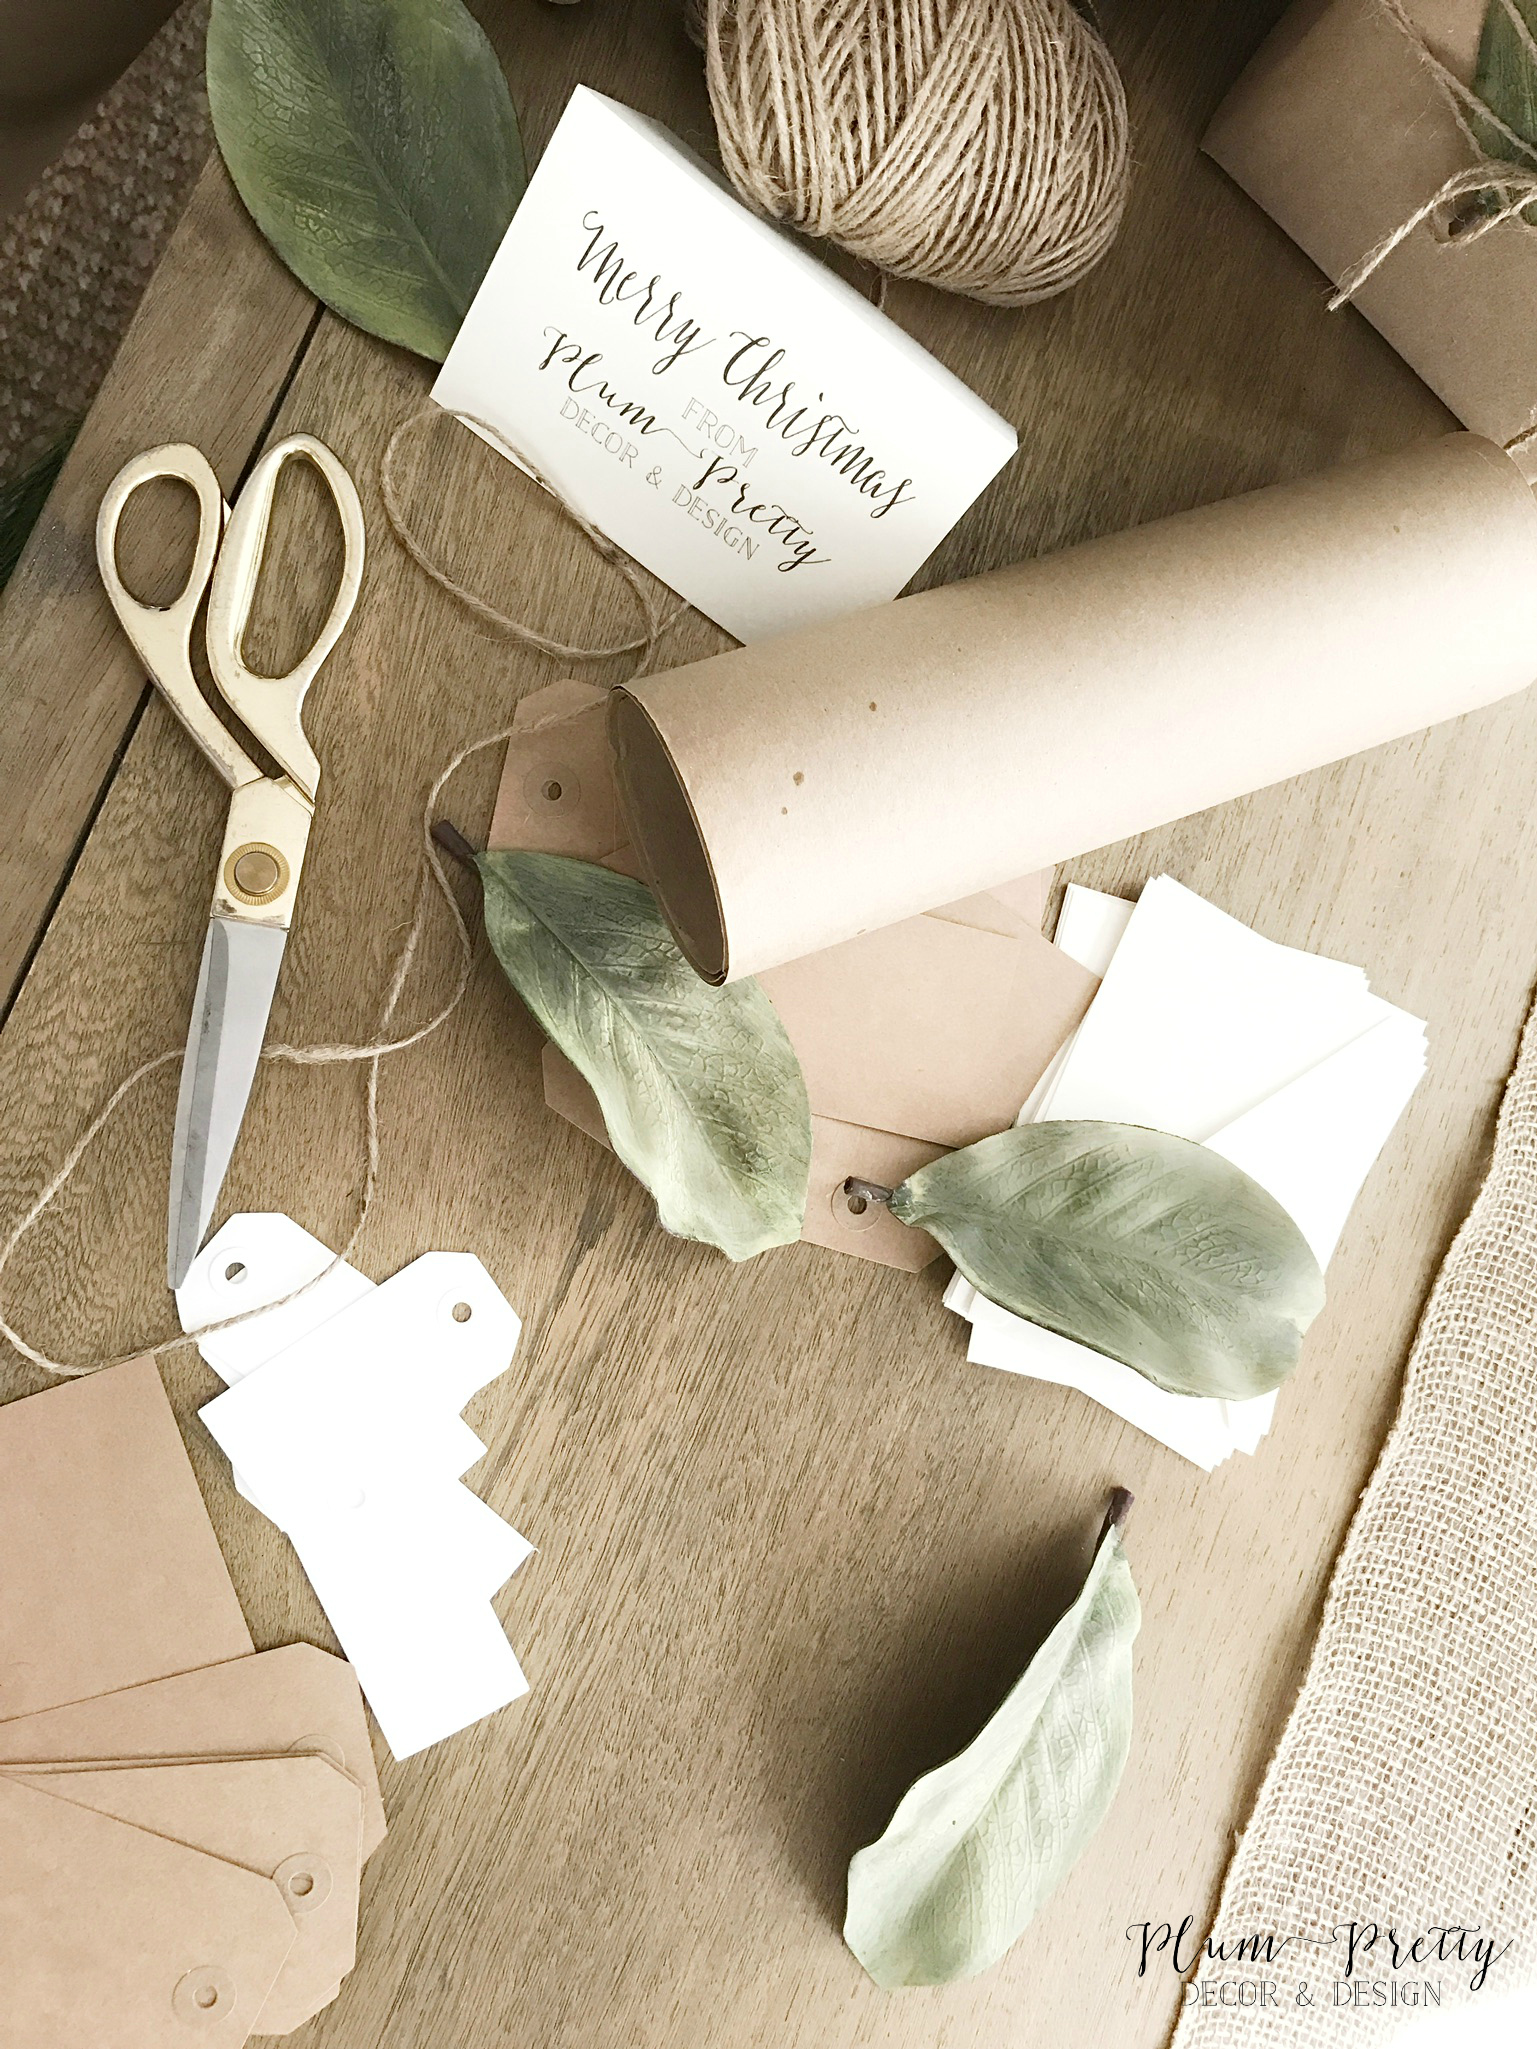 Neutral Present Wrapping with Craft Paper, Jute Twine, Magnolia Leafs, and Burlap- Plum Pretty Decor and Design